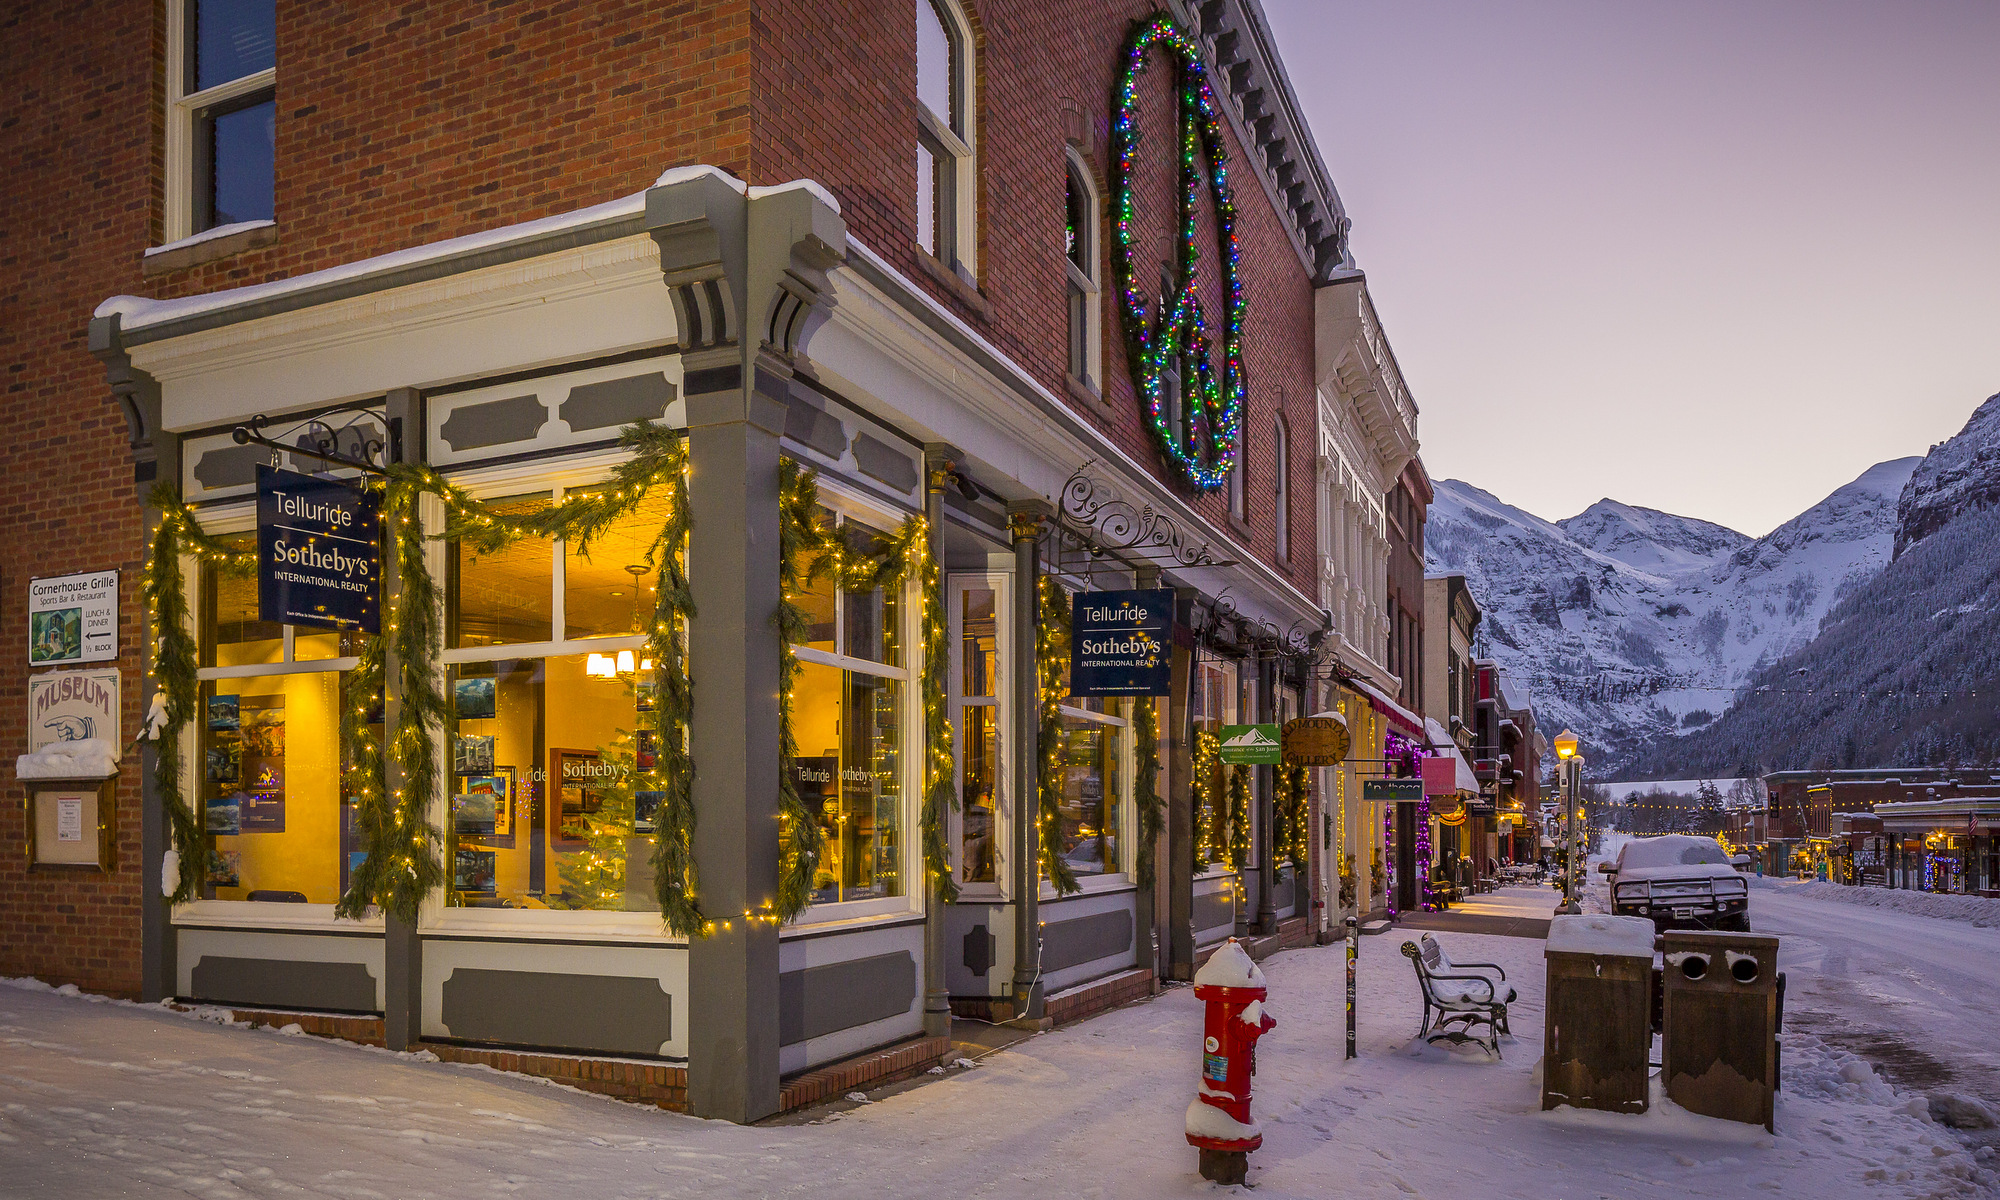 Telluride Sotheby's International Realty